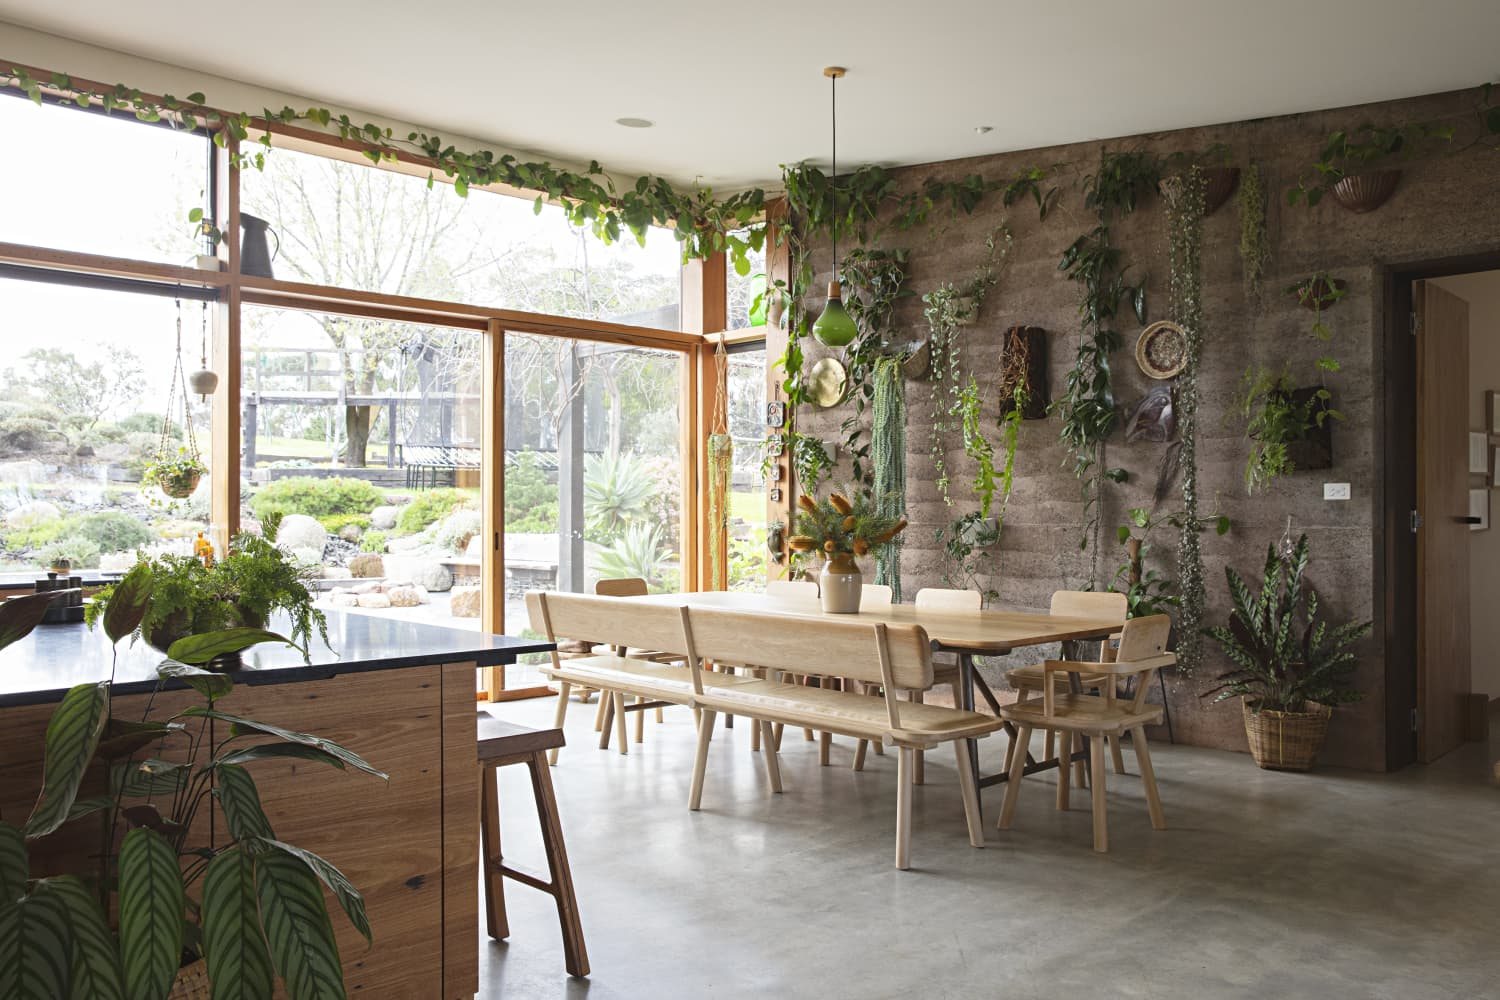 This Gorgeous Australian Home Has the Most Beautiful Plant Covered Wall We've Seen Yet